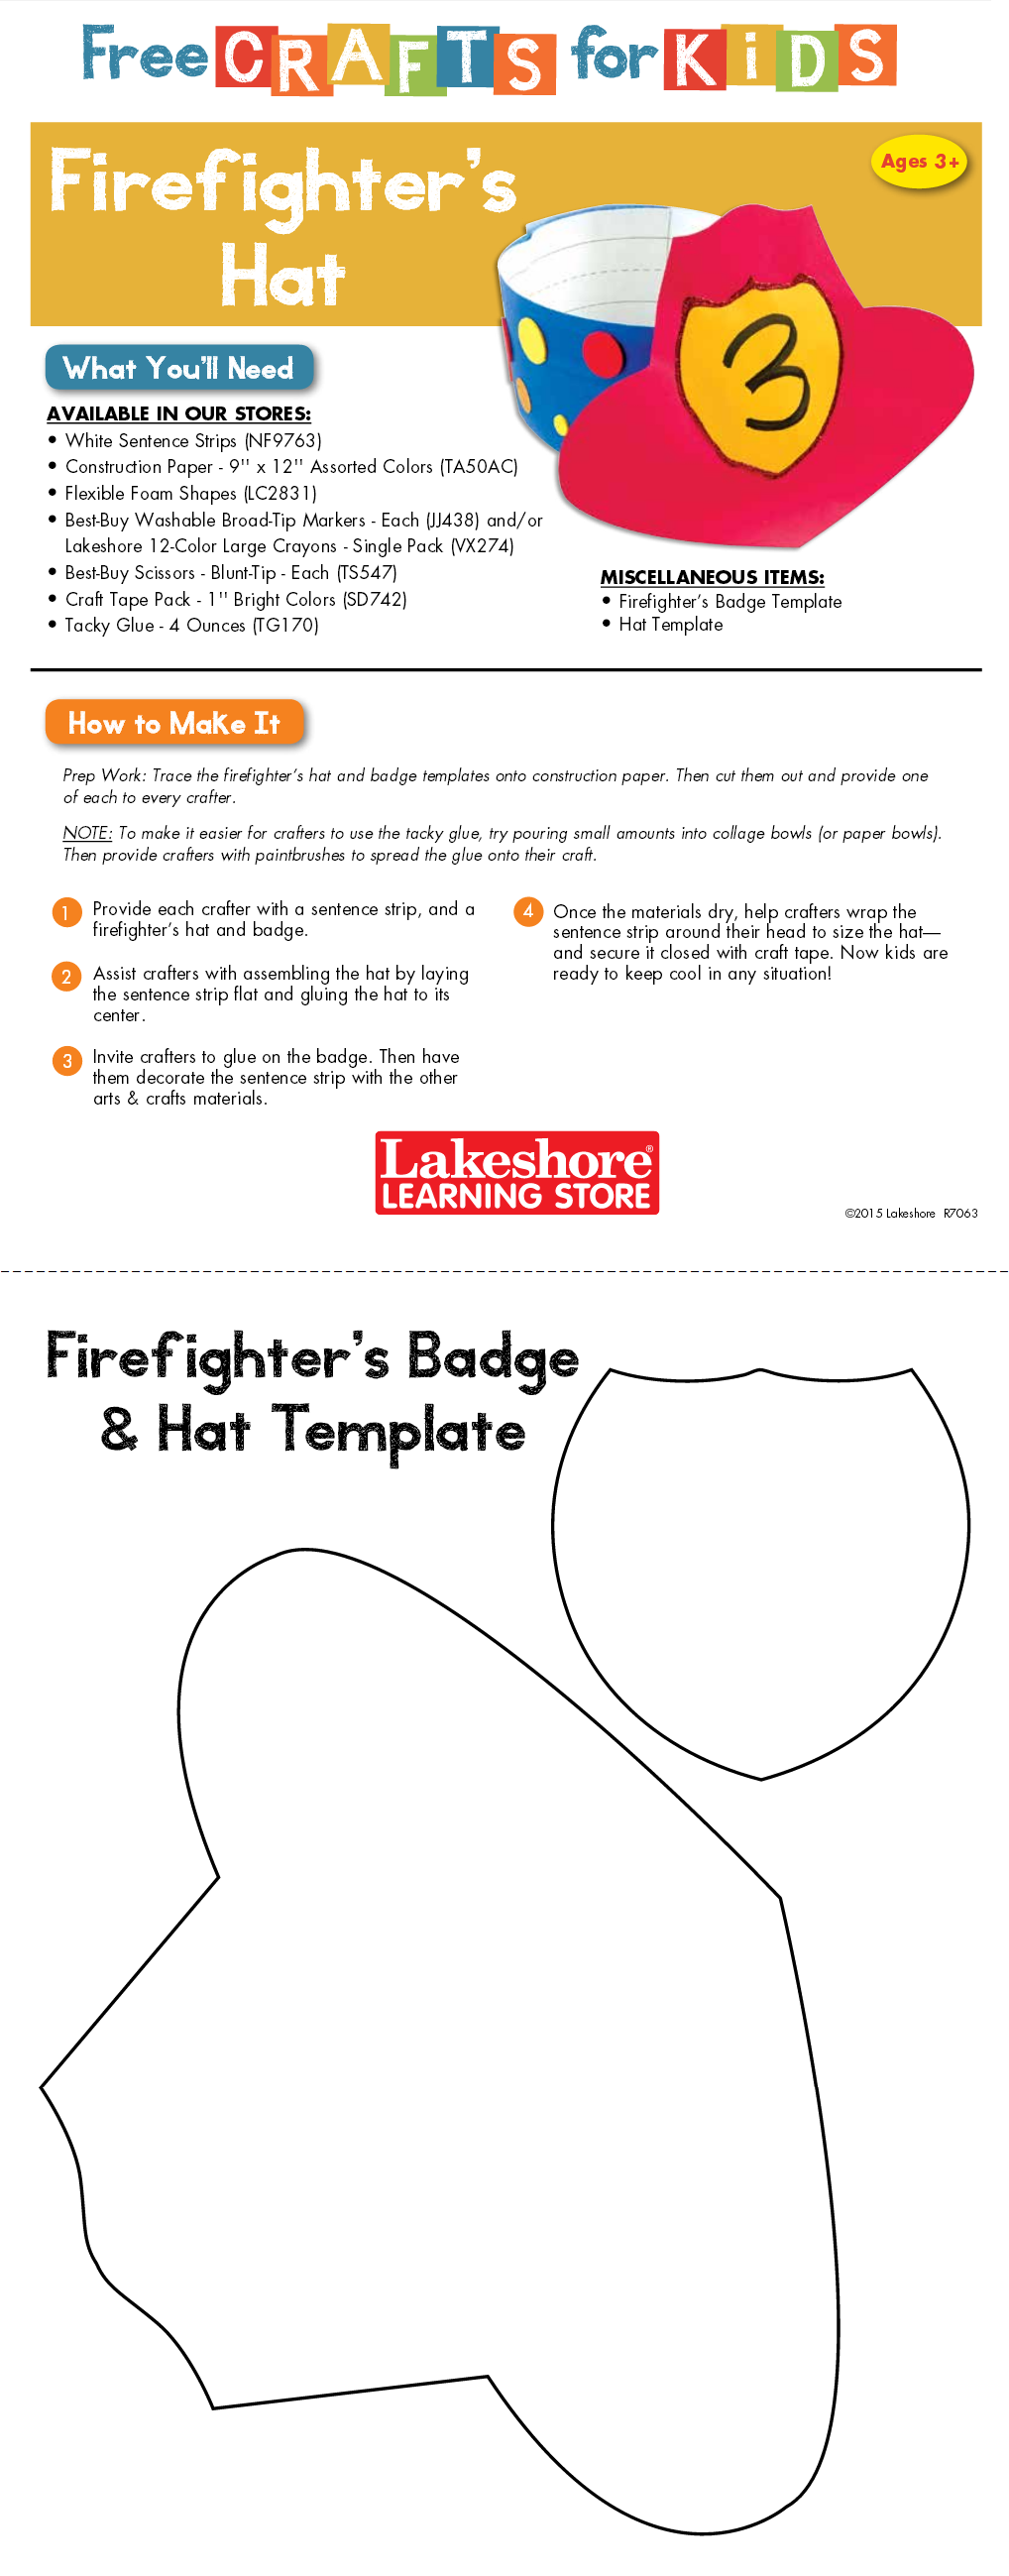 instruction sheet from lakeshore s free crafts for kids event